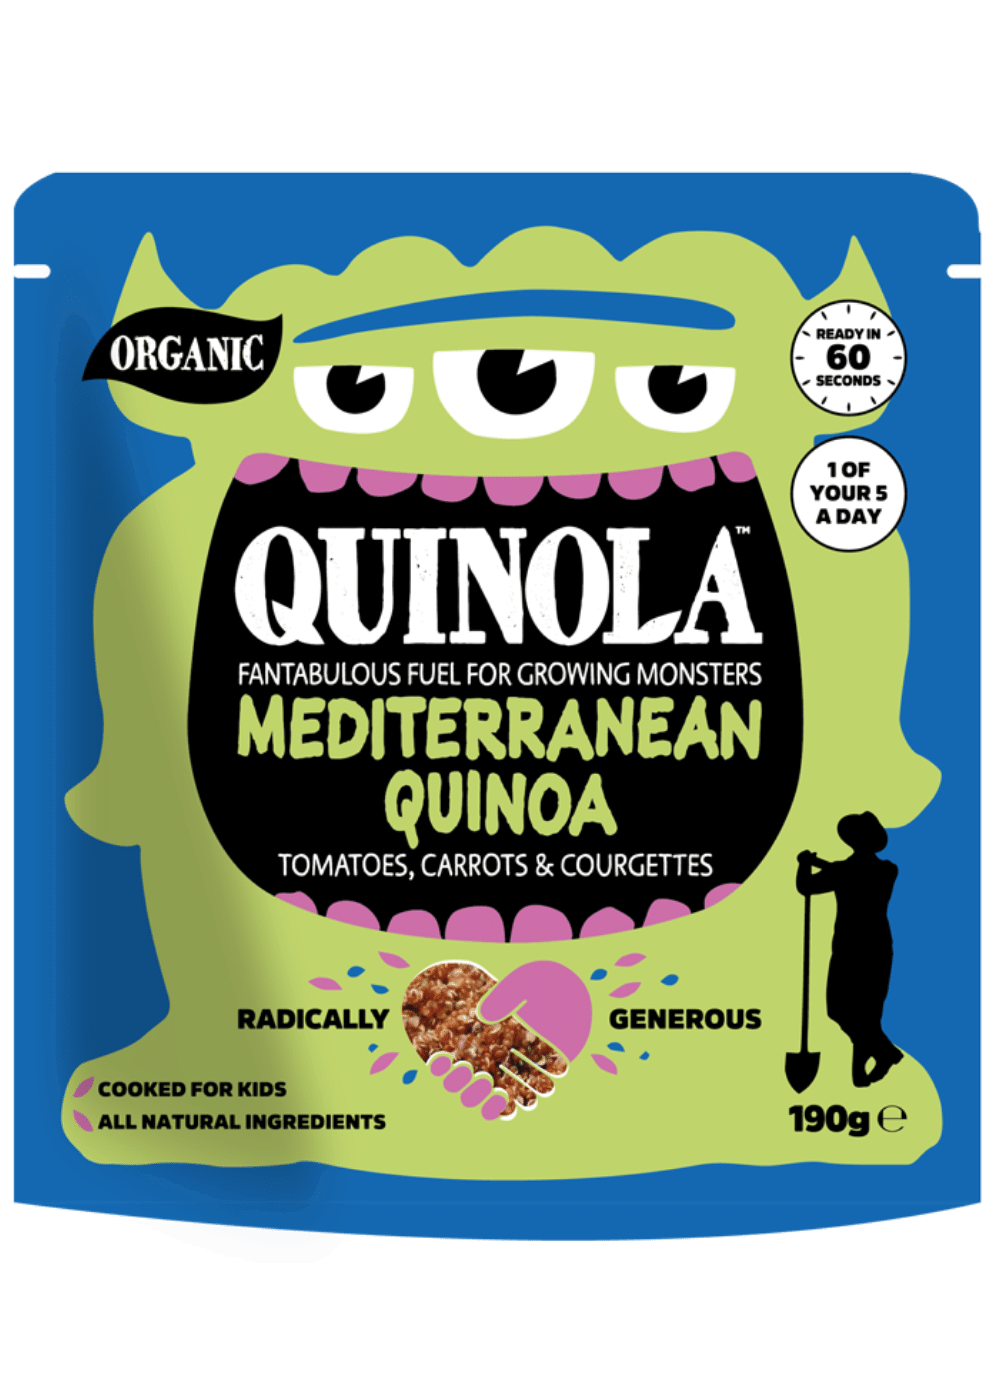 Quinola Mediterranean quinoa for kids